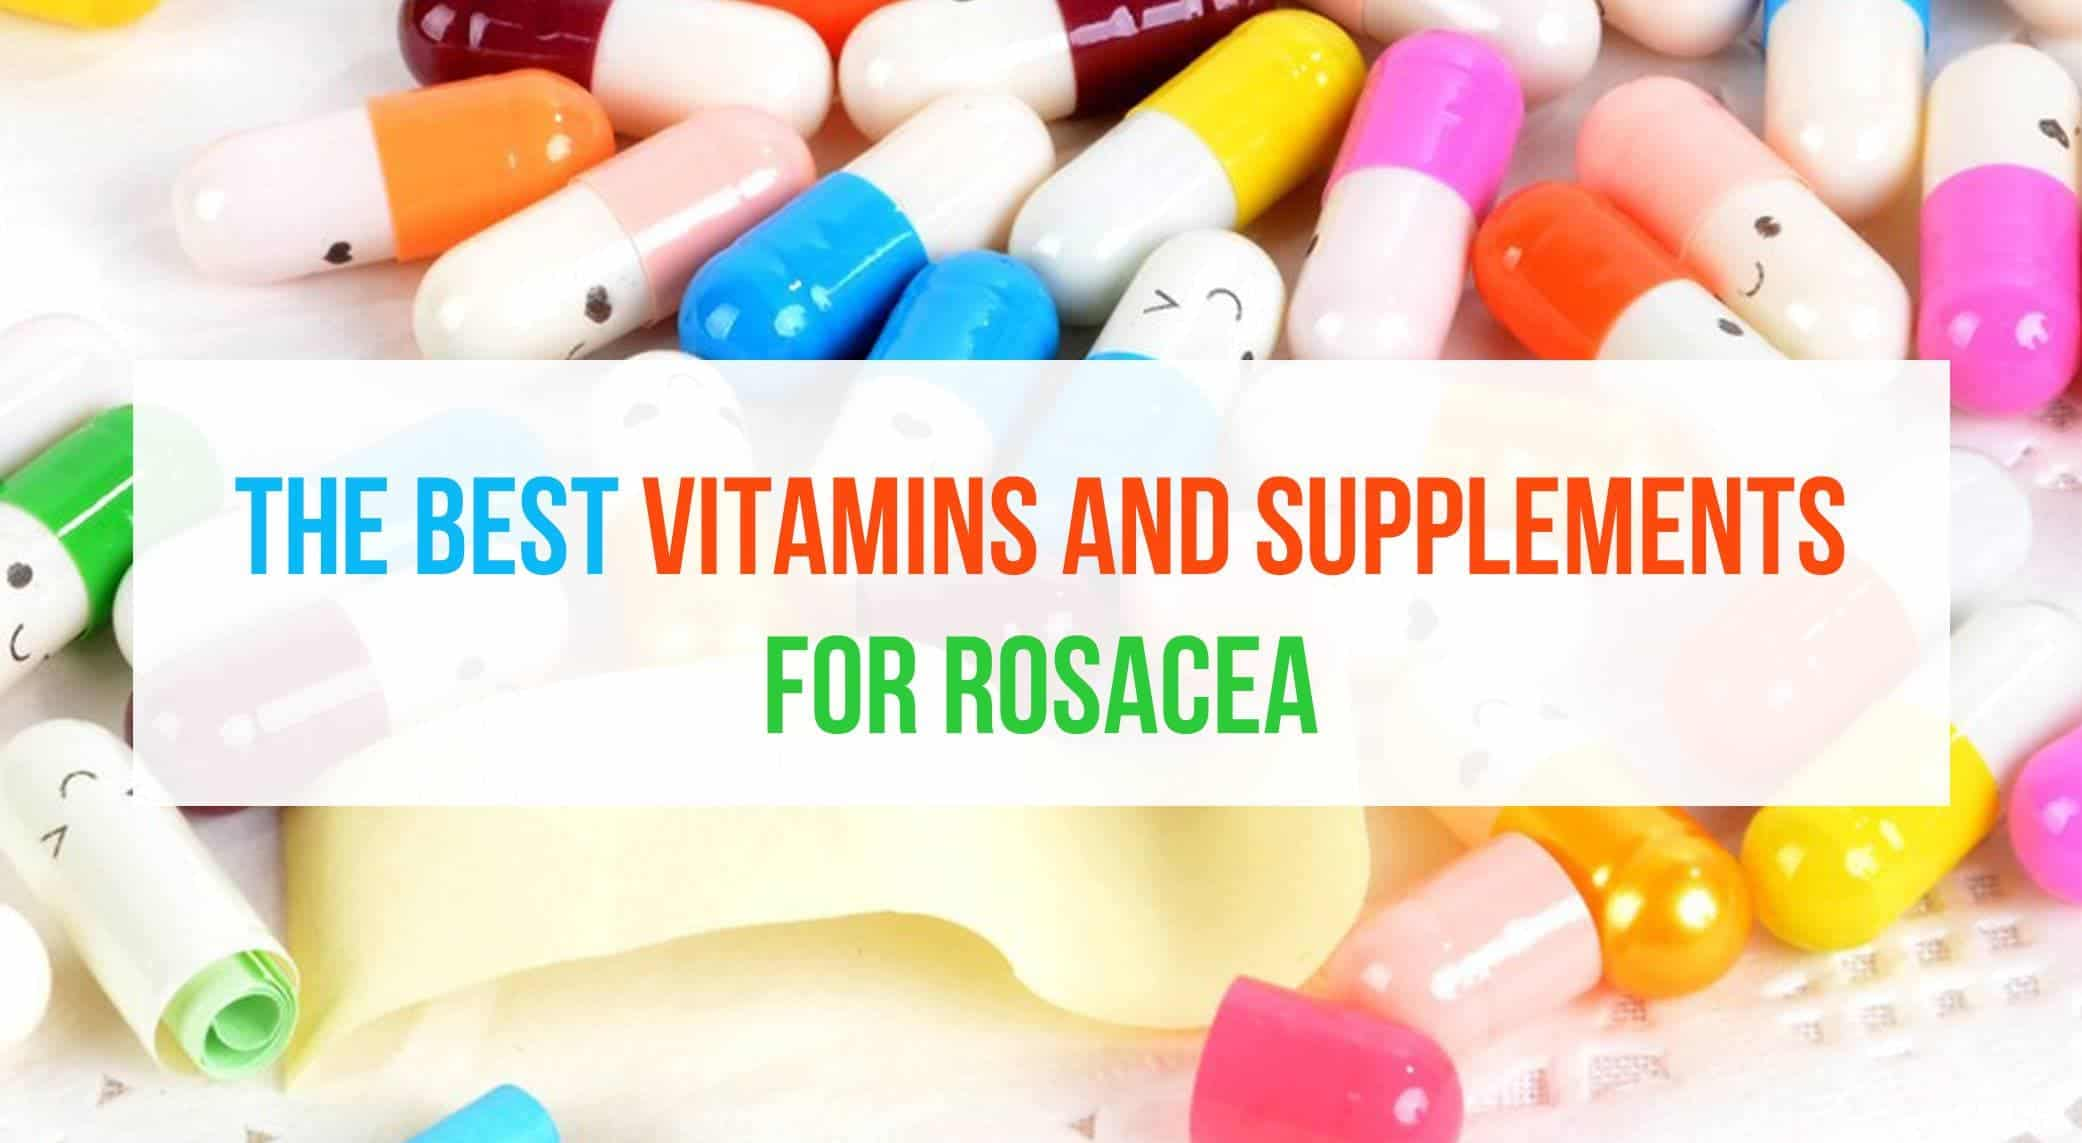 The Best Vitamins and Supplements for Rosacea – 2021 Reviews and Top Picks